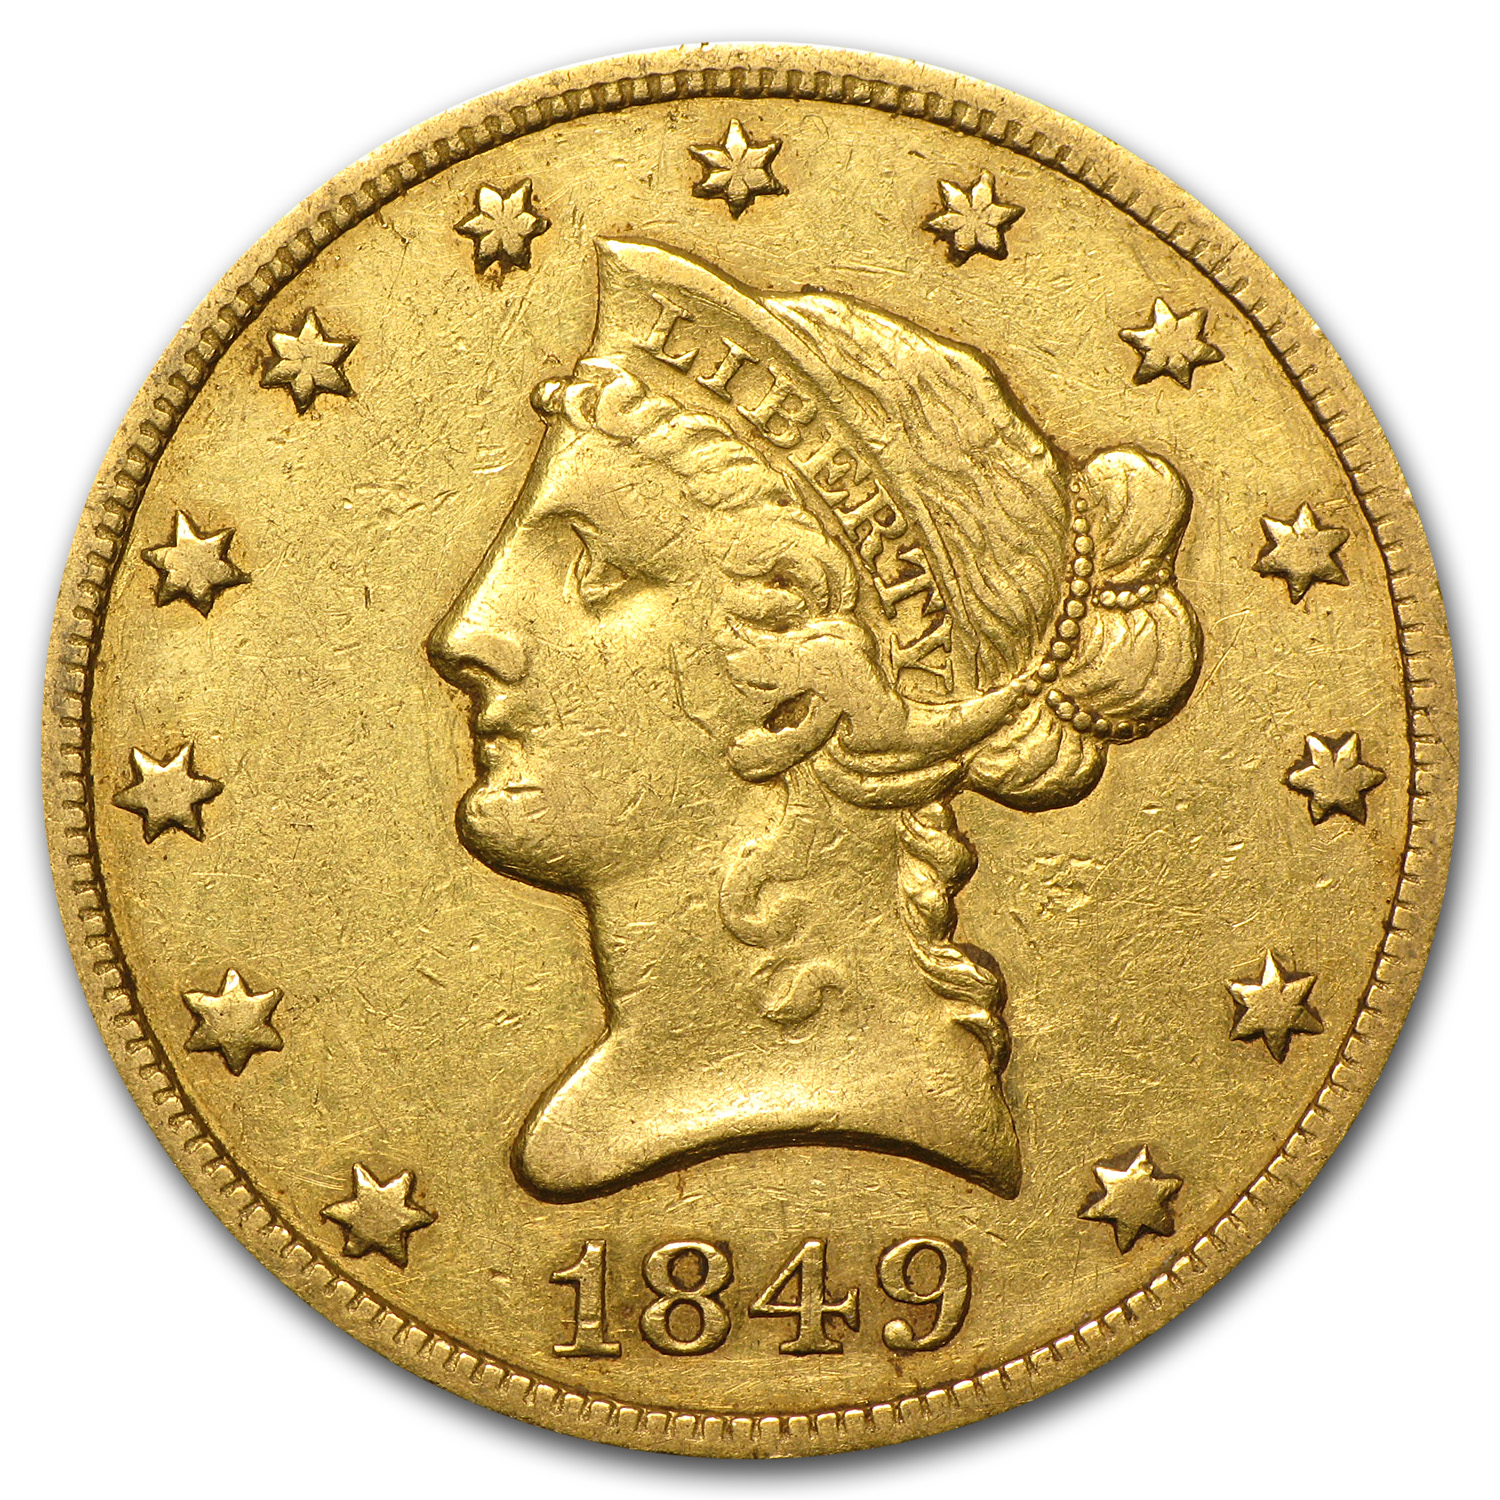 1849 $10 Liberty Gold Eagle VF